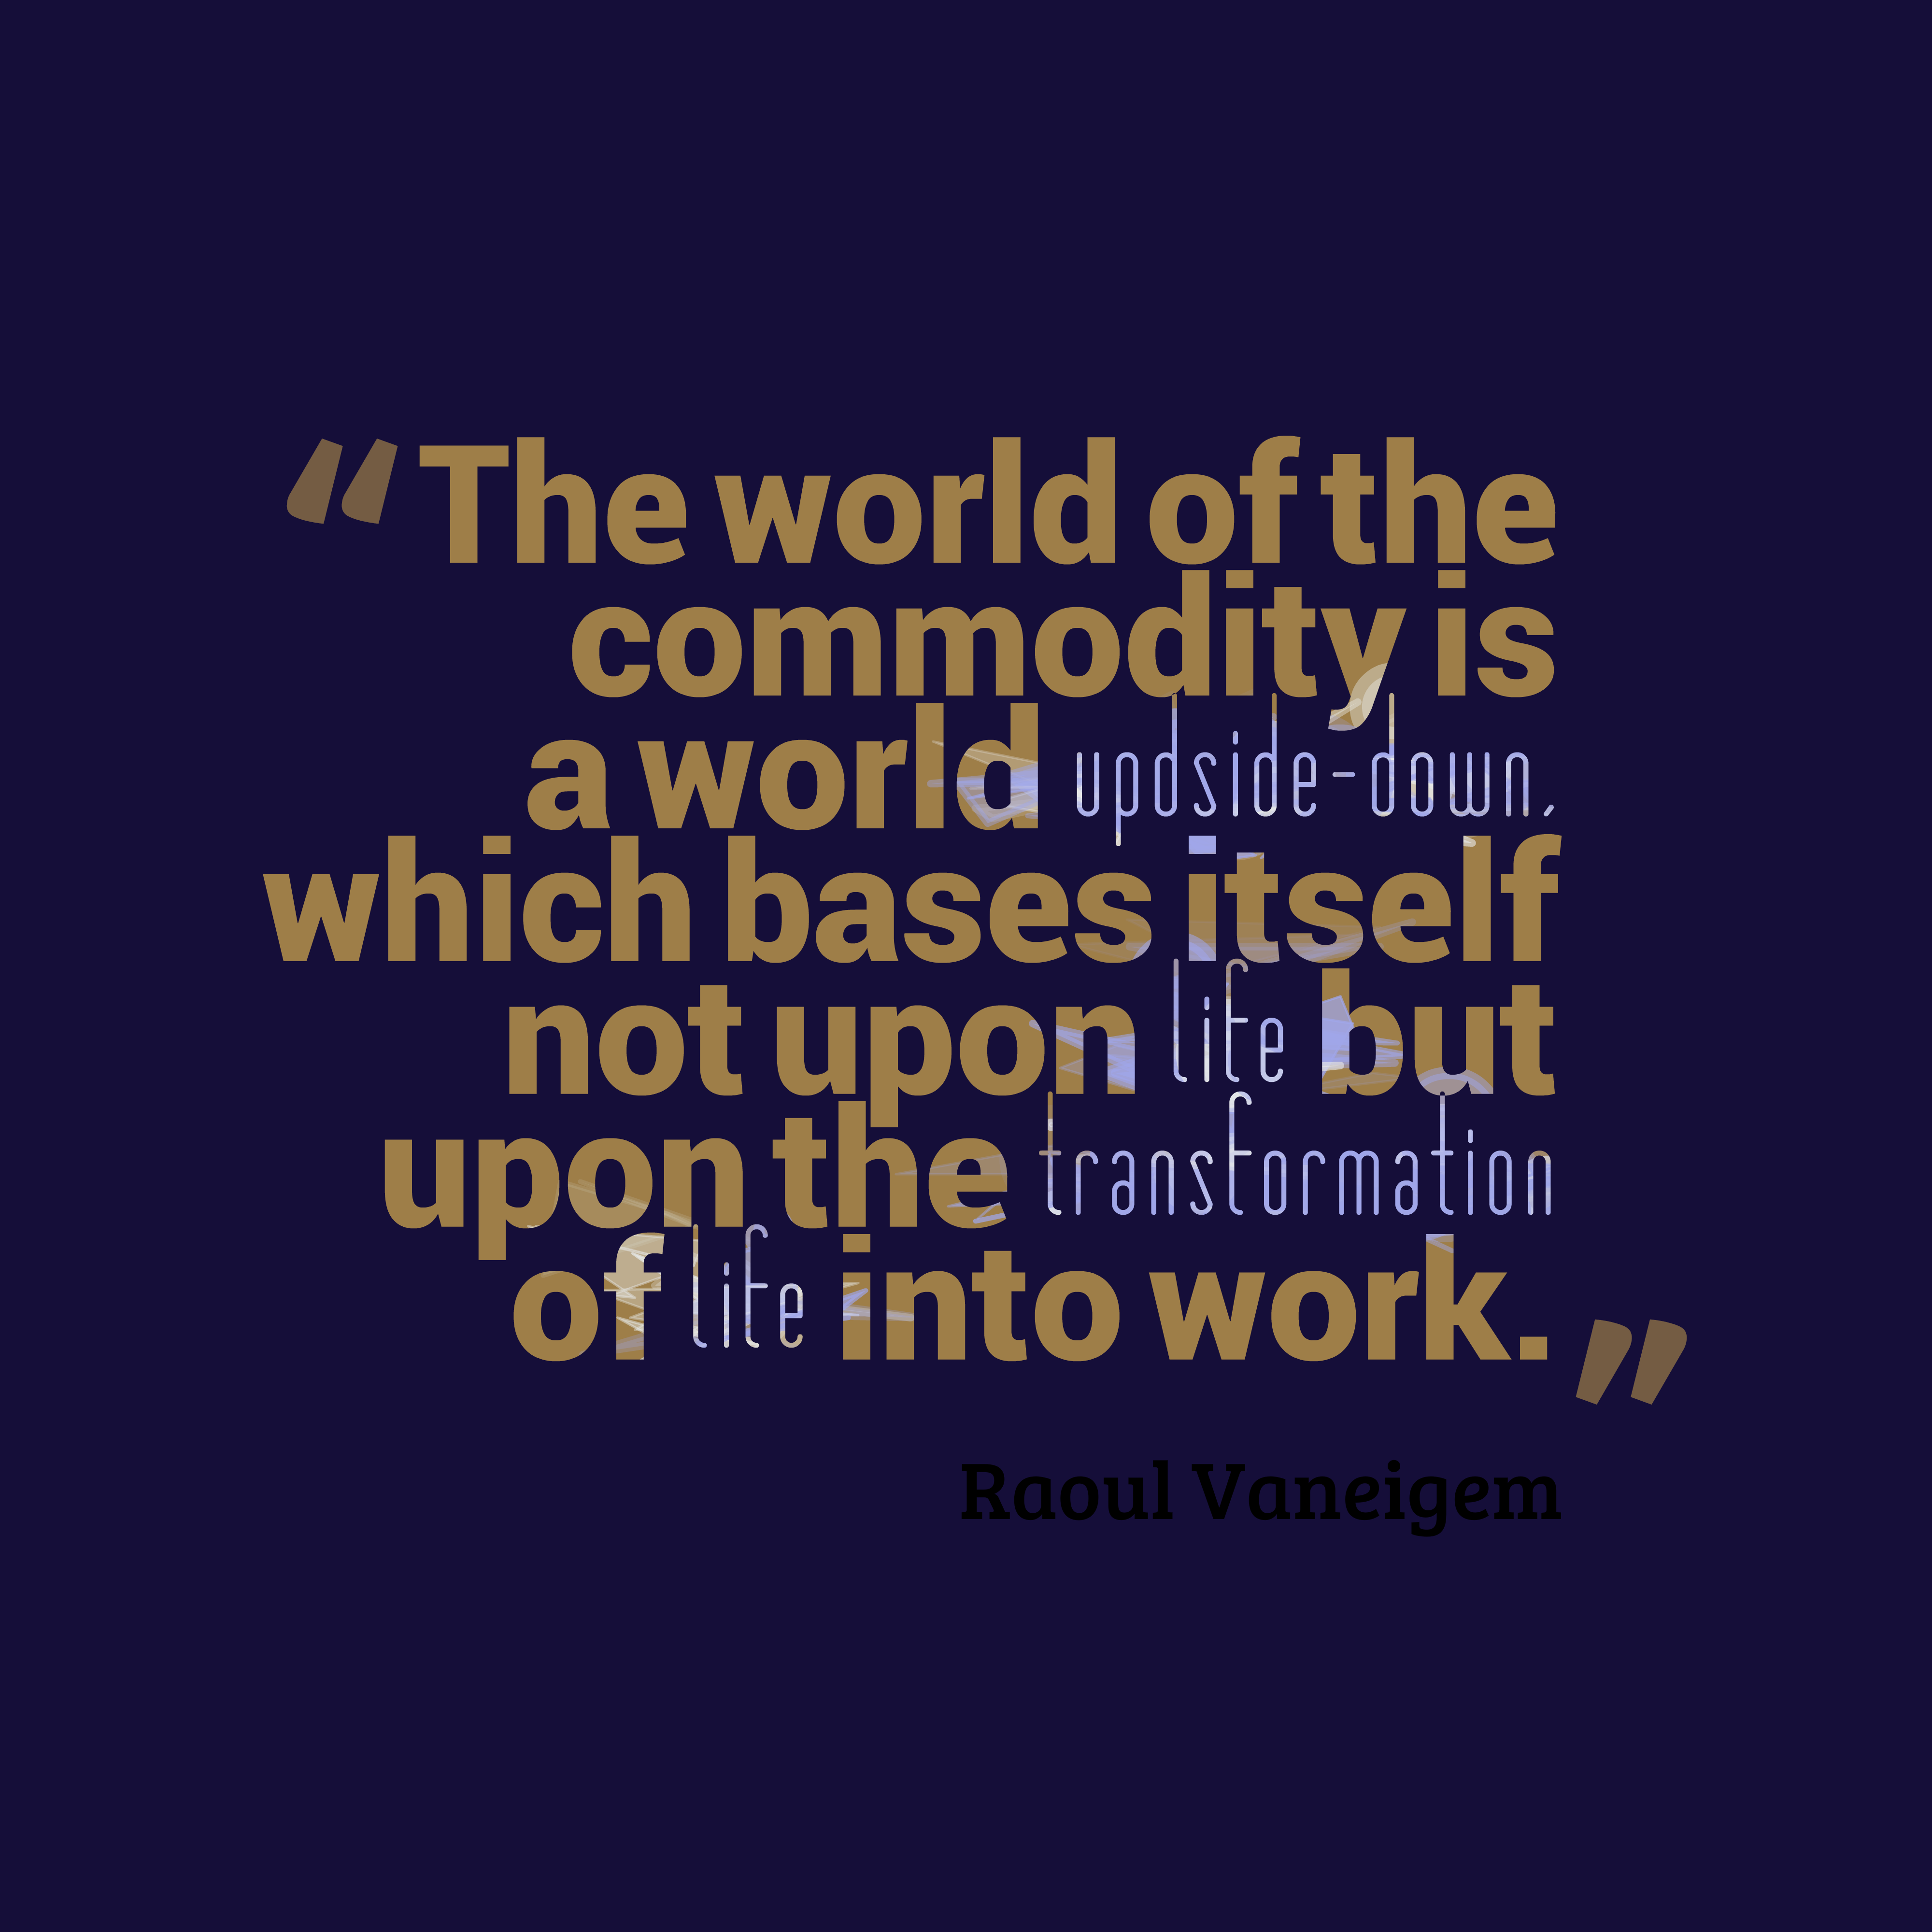 Commodity Quotes New Commodity Quotes Endearing Commodity Quotes S&p 500 Options